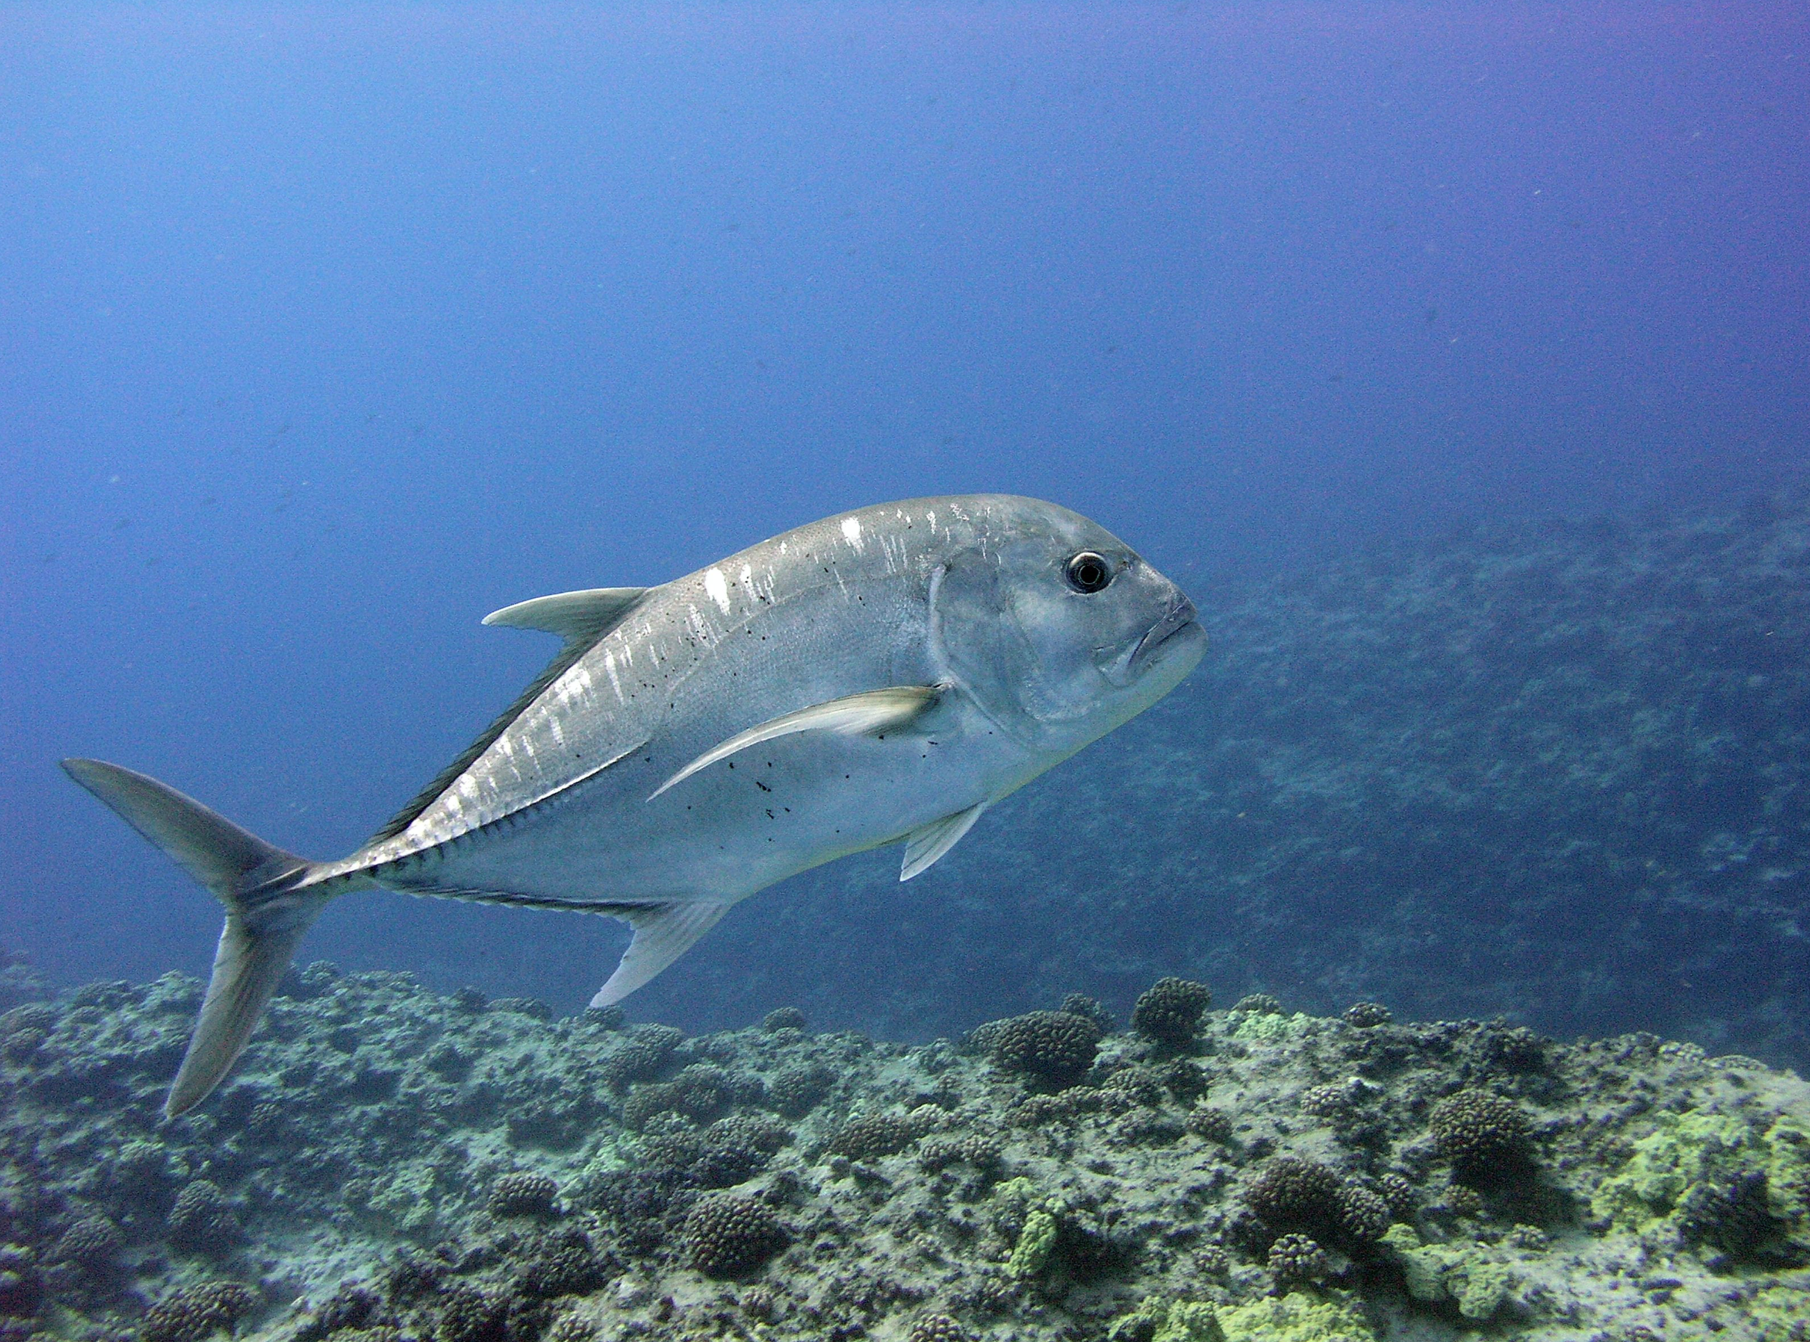 Study Finds Return of Fish Populations and Larger Predators at Molokini During COVID-19 Restrictions